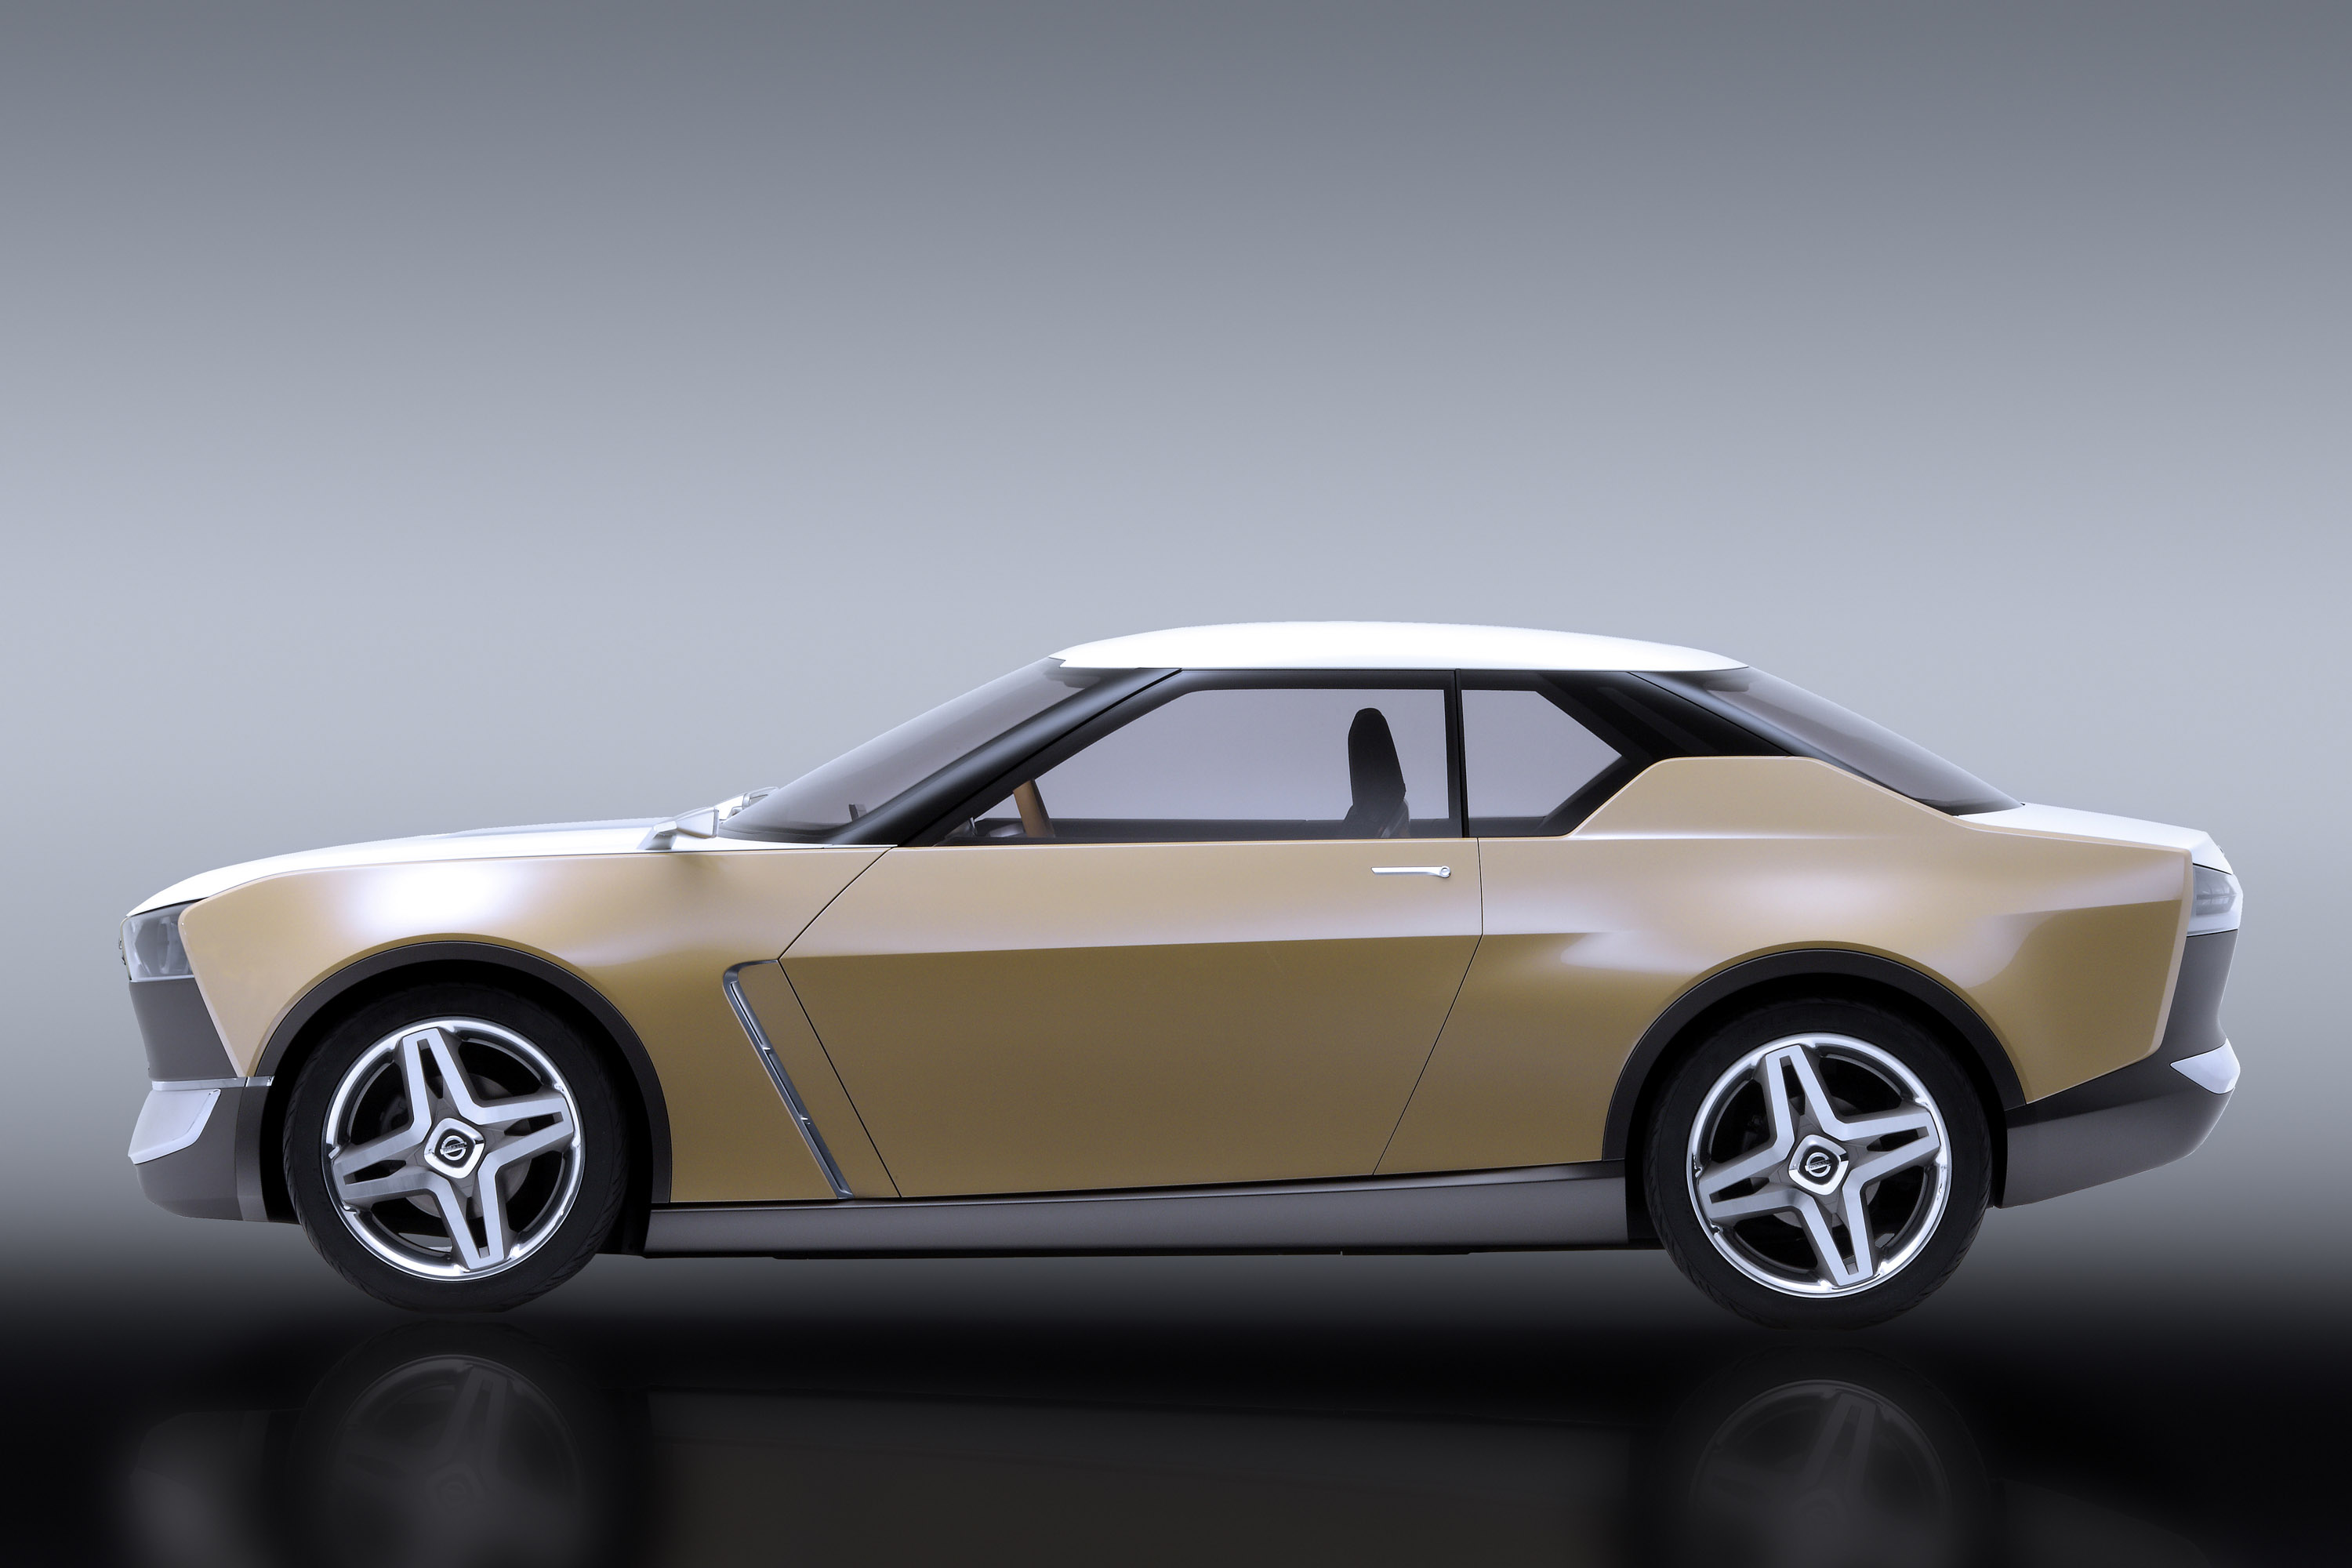 2015 Nissan IDx Freeflow Concept - HD Pictures ...